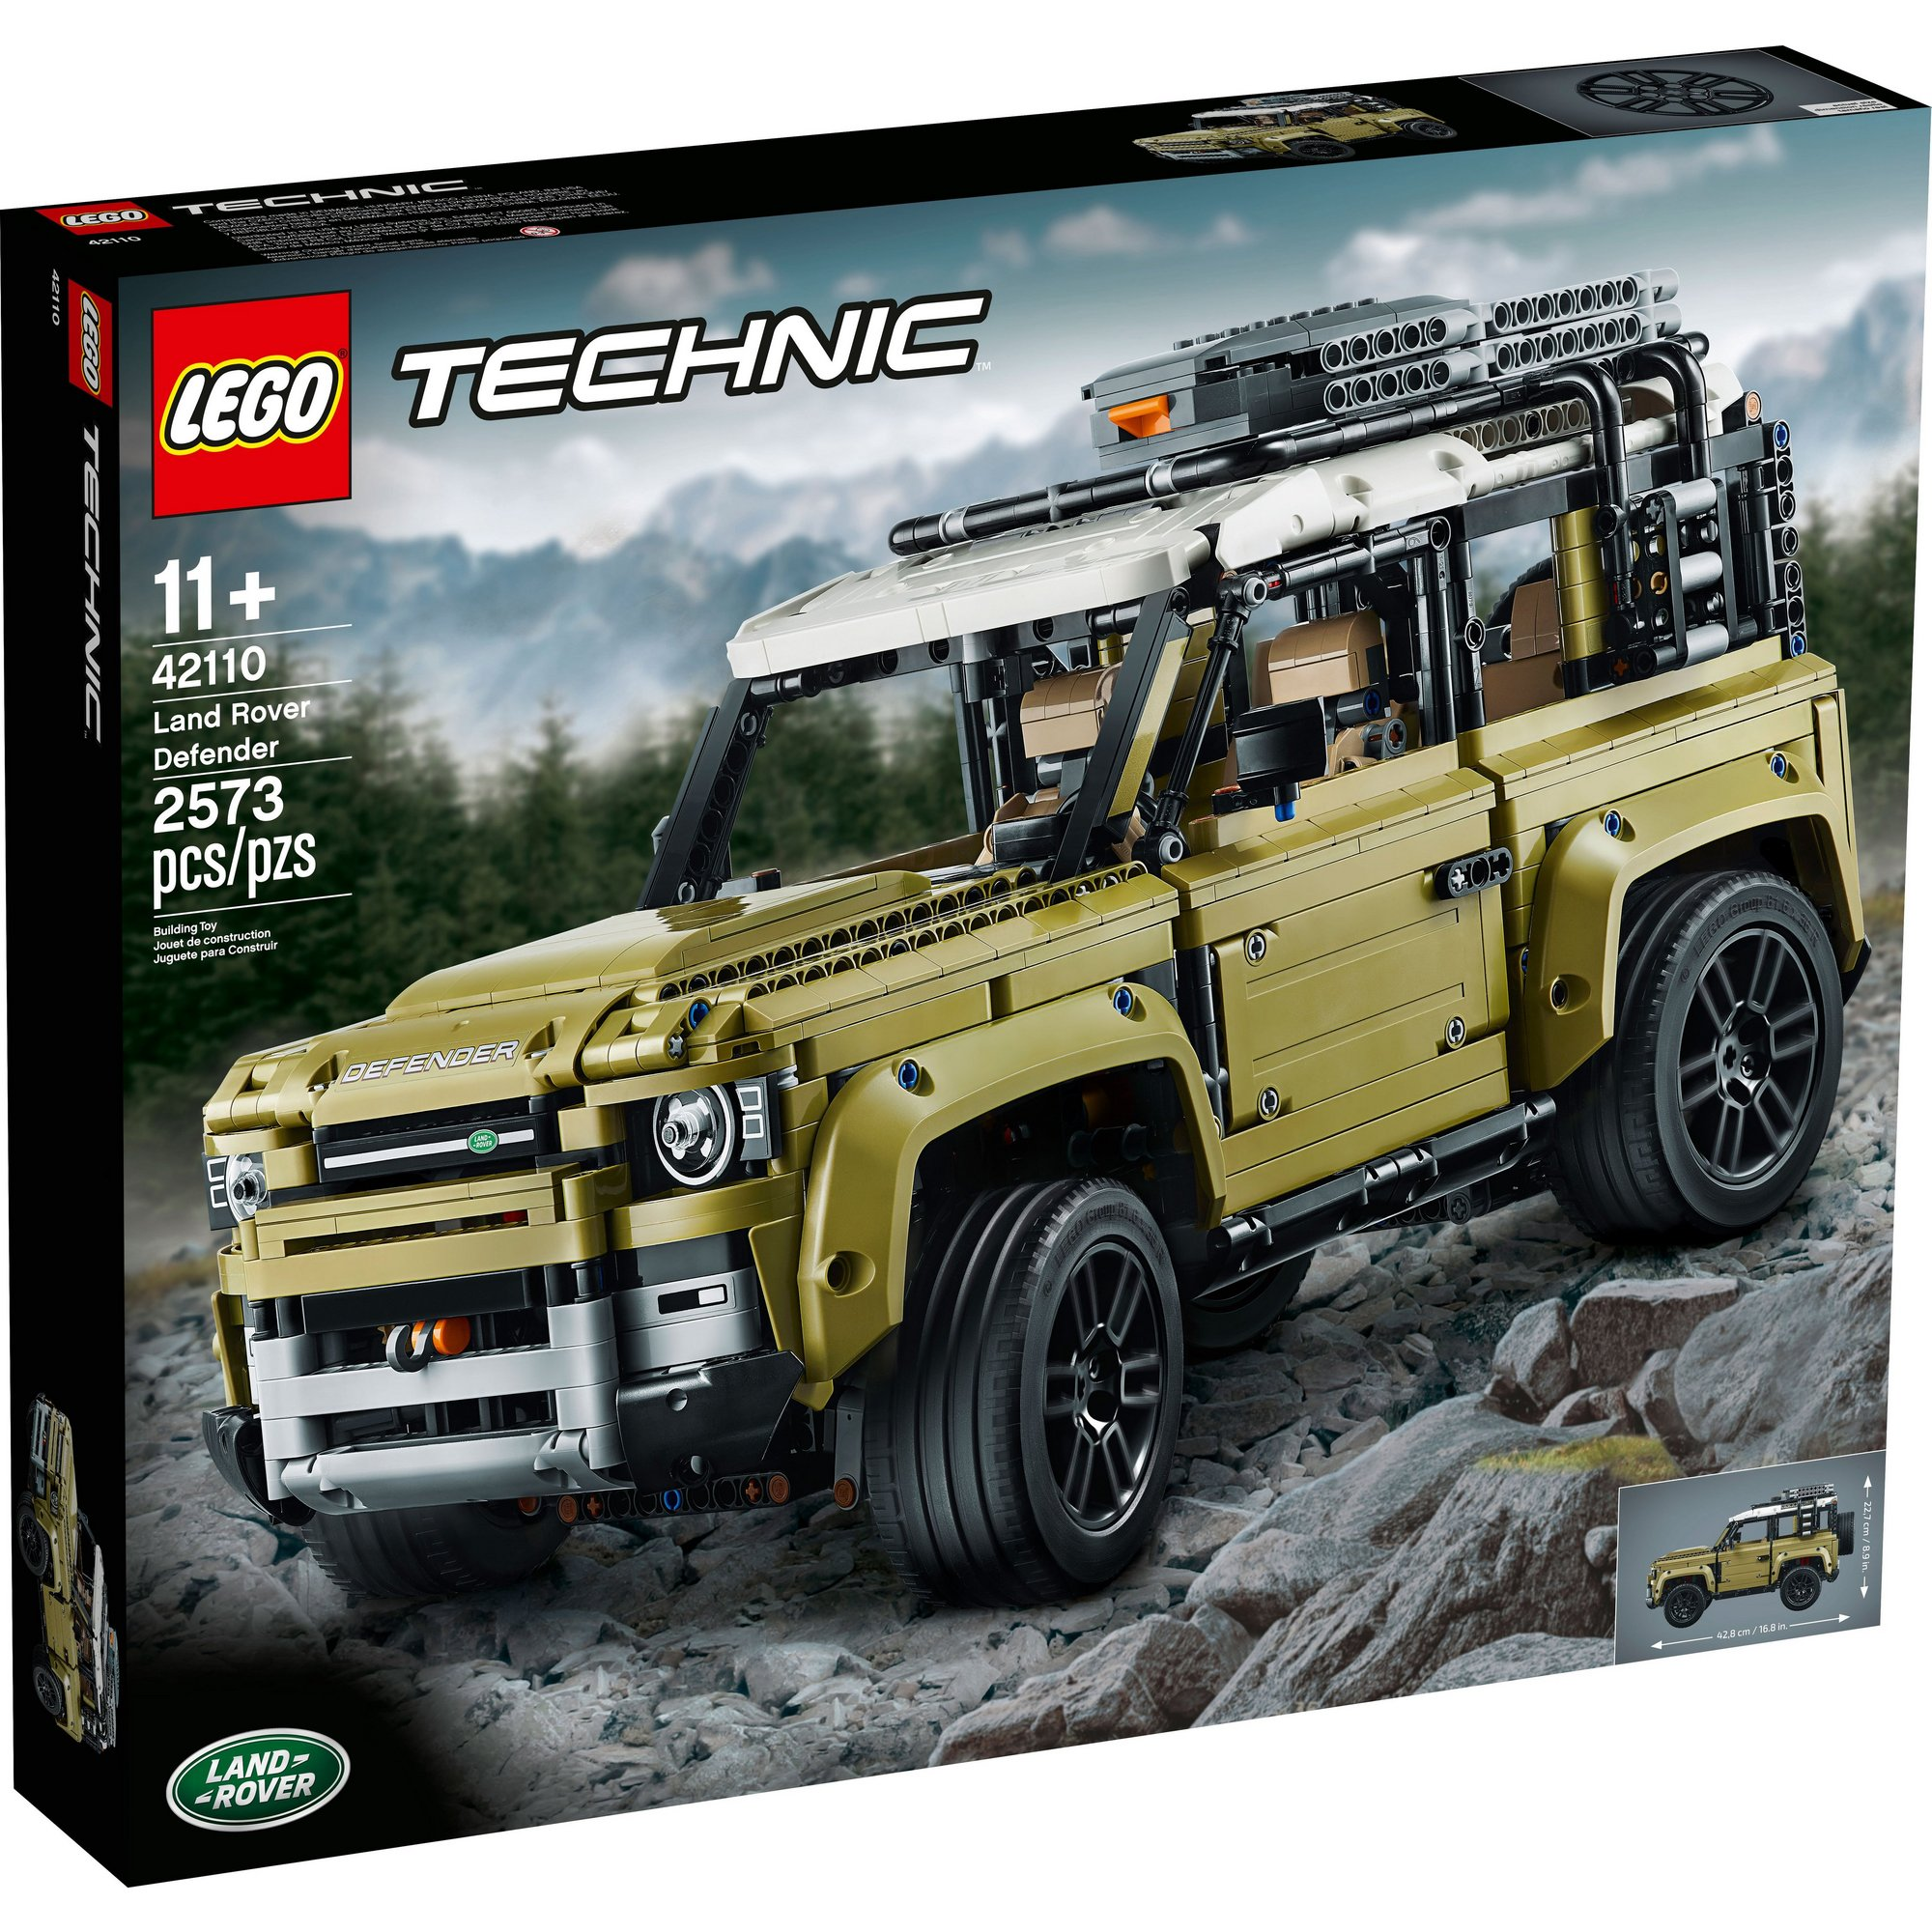 Image of LEGO Technic Land Rover Defender